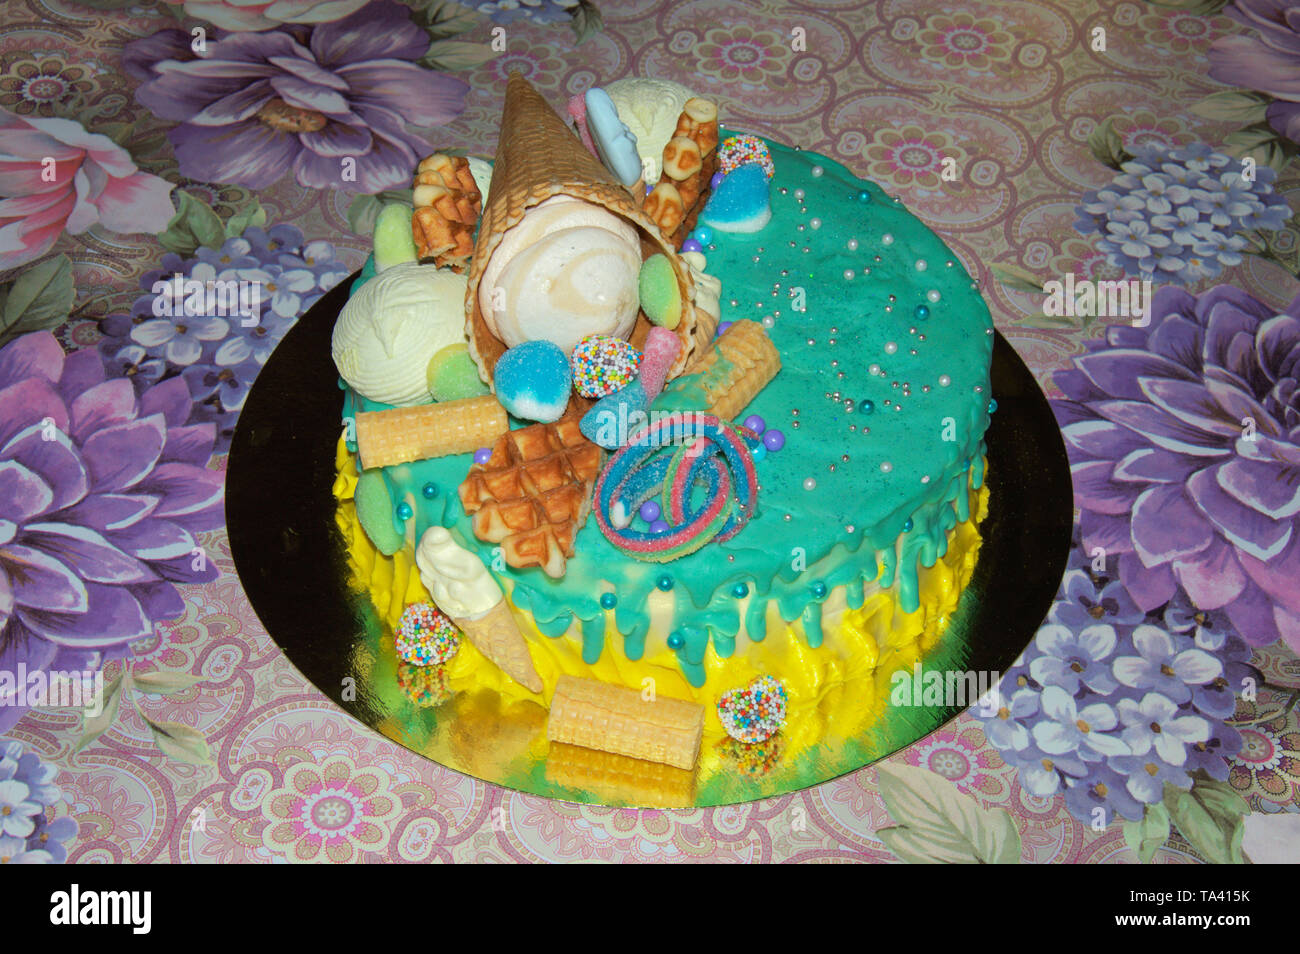 Wondrous Beautiful Birthday Cake In Icing With Fillings Of Fruit Funny Birthday Cards Online Inifodamsfinfo